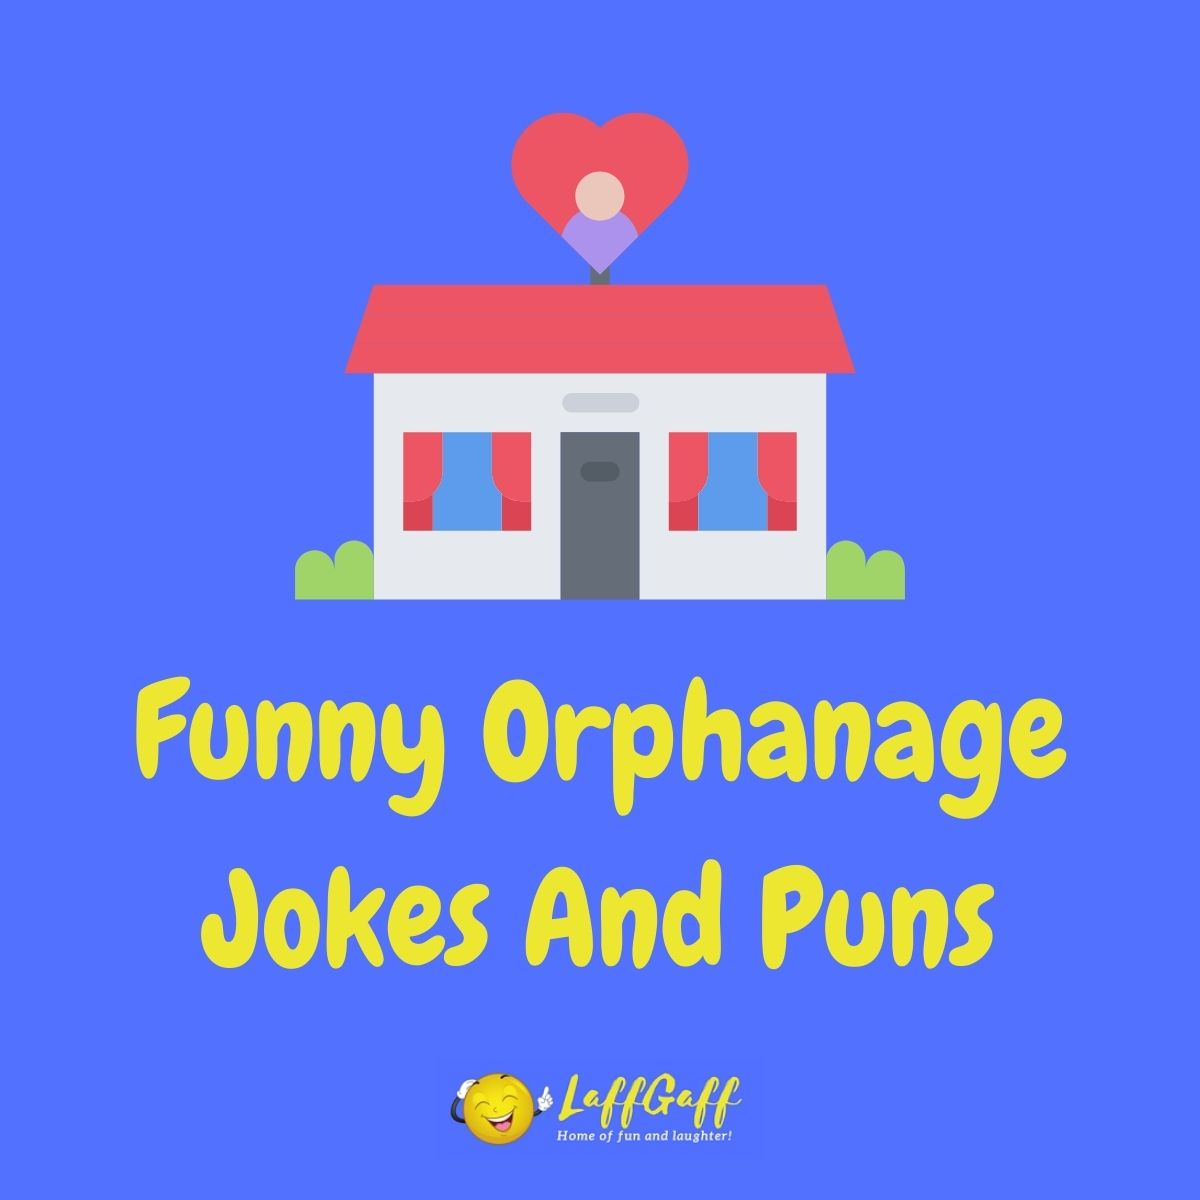 Featured image for a page of funny orphanage jokes and puns.